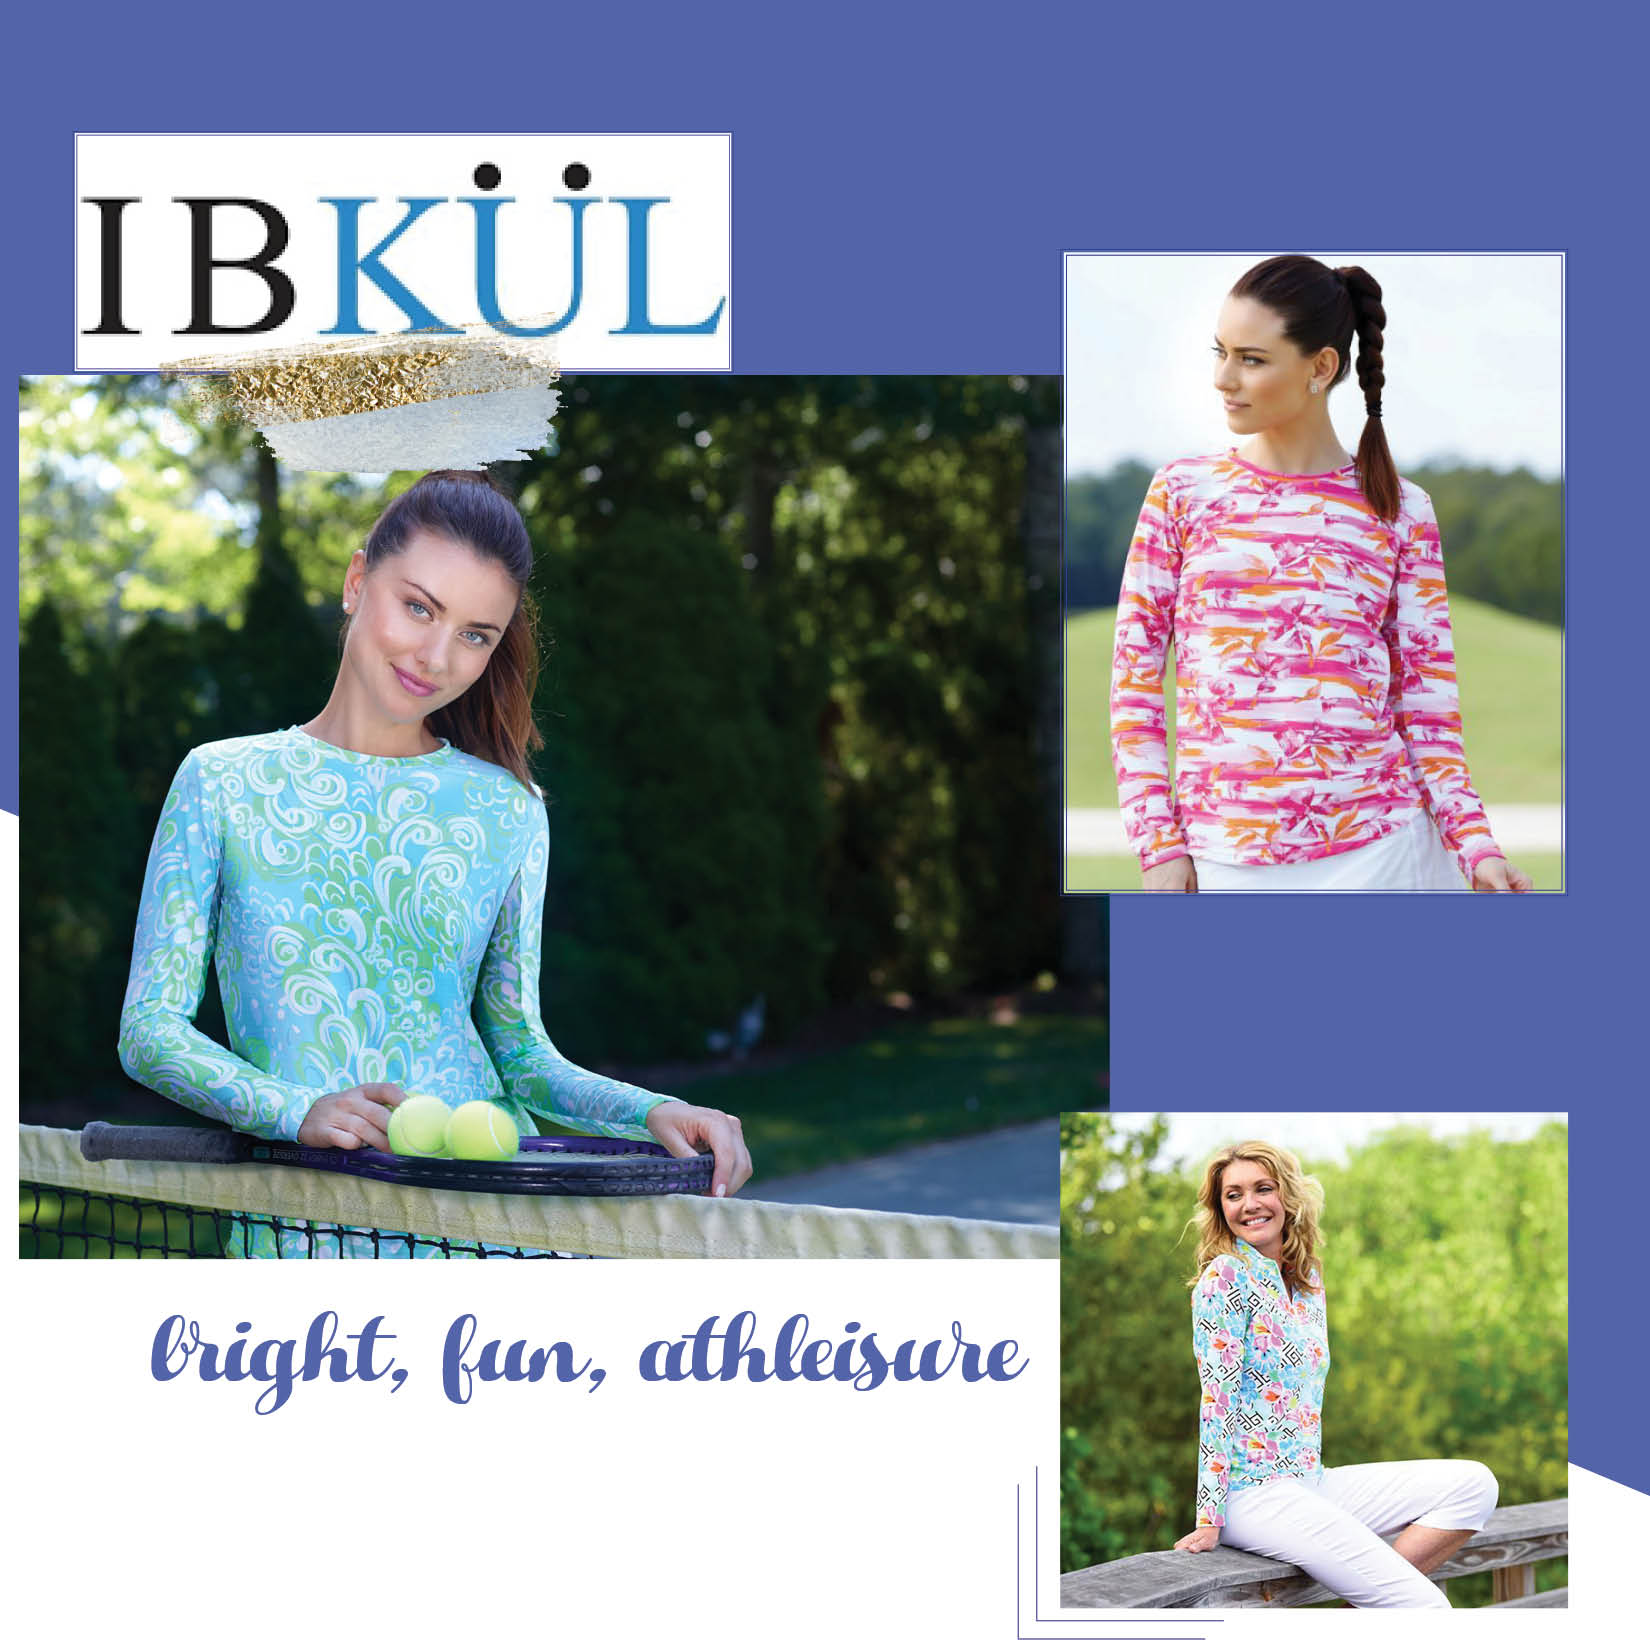 "Ibkul - ""IBKUL"" launched it's opening collection in 2015 with a few woman's specialty shops, country clubs, and golf shops throughout the state of Florida.The main reason for our success is our patented ""IceFil"" high tech fabric. It actually cools the body up to five degrees, maintains a UPF 50 rating along with moisture wicking, and anti microbial features.We have combined this innovative fabric with exclusive bright beautiful resort prints that has taken the activewear market to the next level.Icefil fabric converts sweat into cool energy.Fast drying, moisture wicking fabric.Flat weave and anti-microbial stretch fabric.Mesh underside of sleeve for increased airflow.UPF 50 offers superior sun protection.Ideal for athleisure, beach, boating, golf, pool, or an extra layer on cooler days/nights."